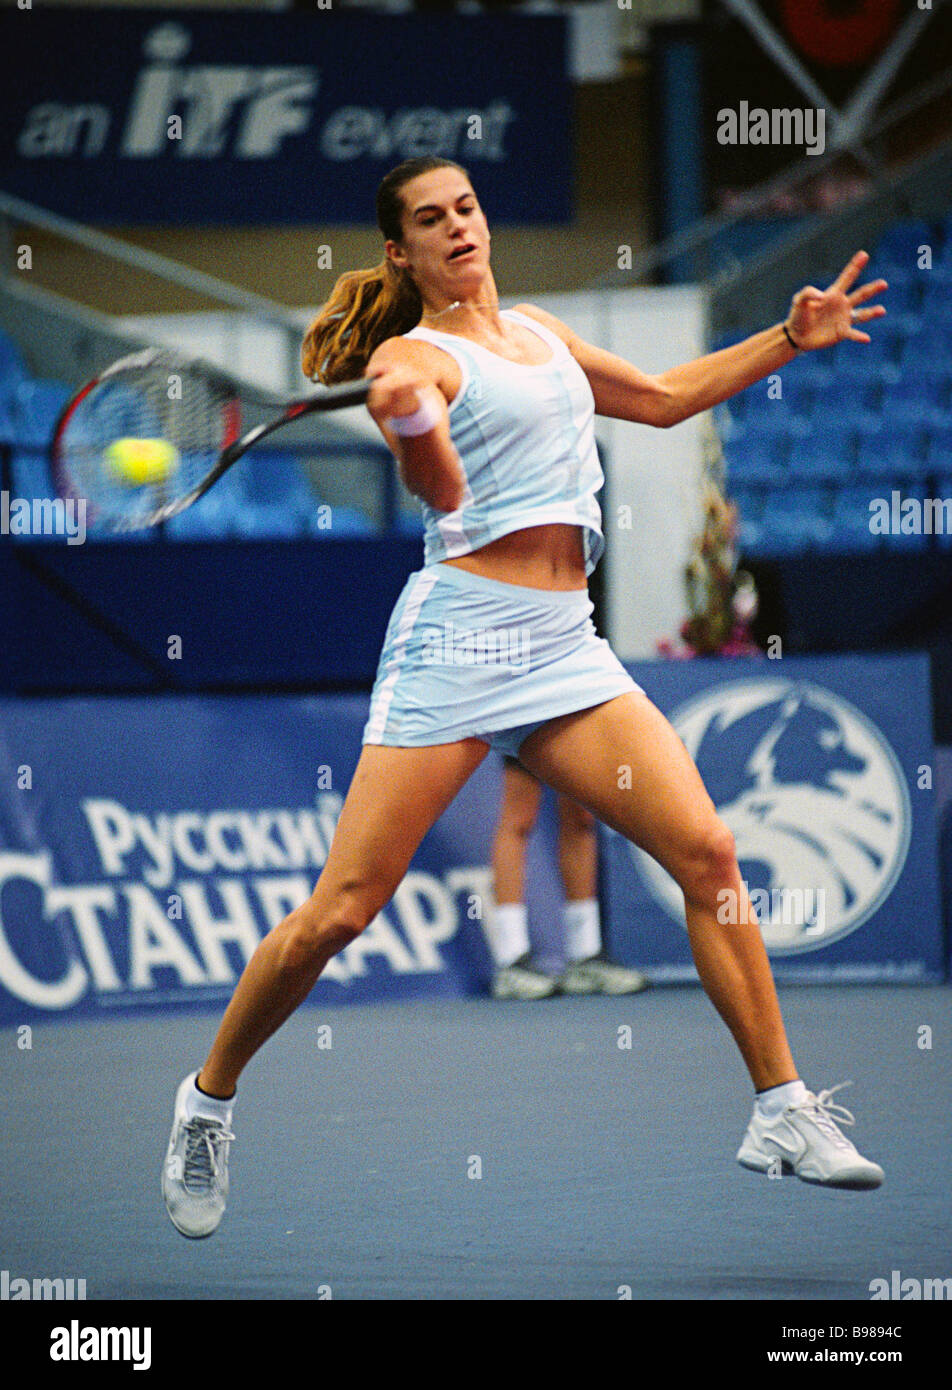 French tennis player Amelie Mauresmo won a match against American